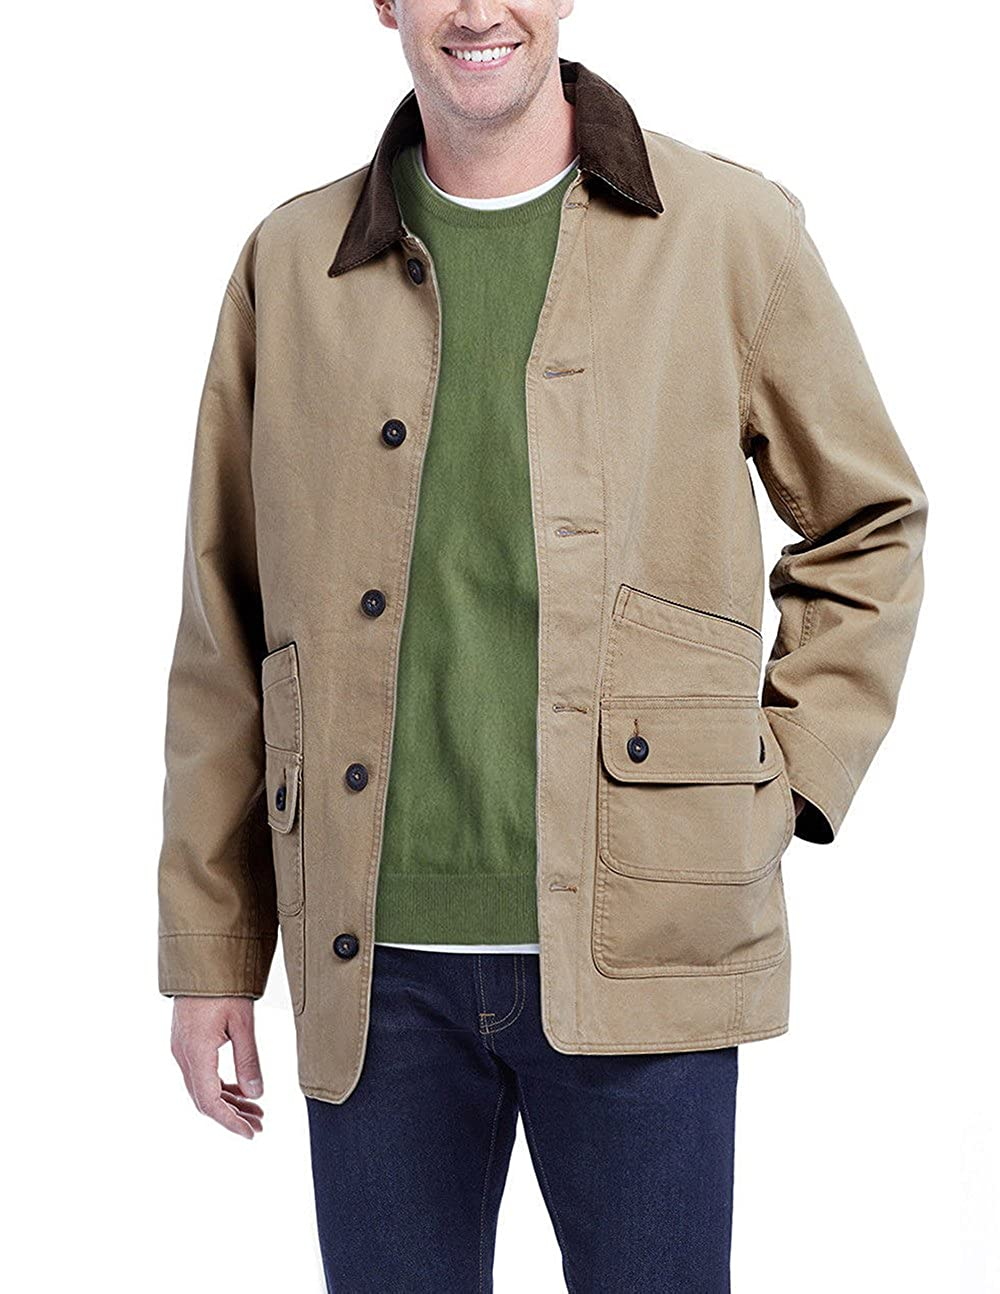 5f5467c39 The Orvis New 2XL Barn Jacket Beige Tan New Mens Size: XXLarge Coat Cotton  Canvas Lined